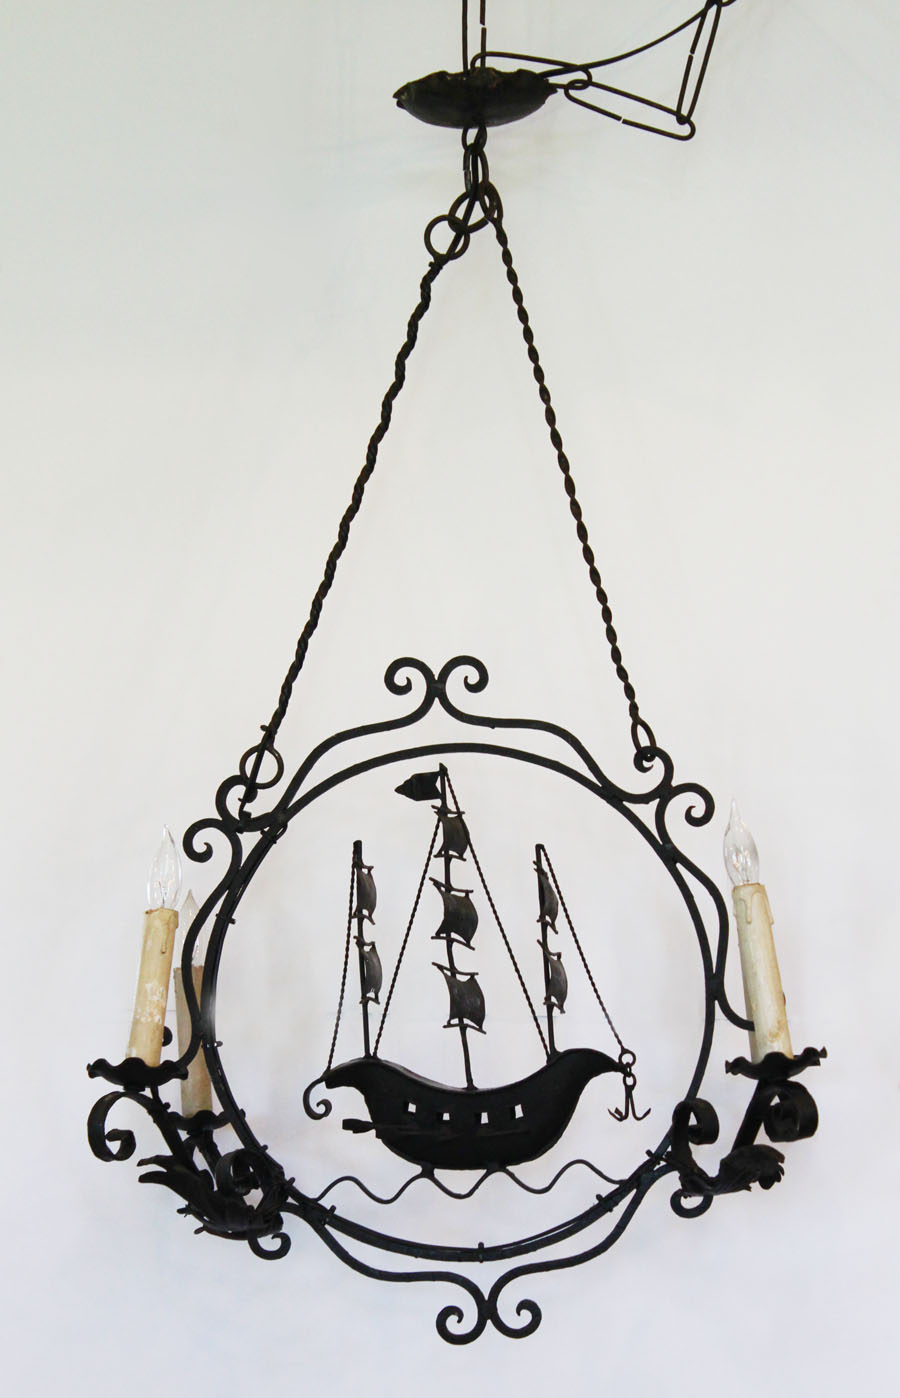 Antique HandMade Wrought Iron Ship Chandelier from Genoa